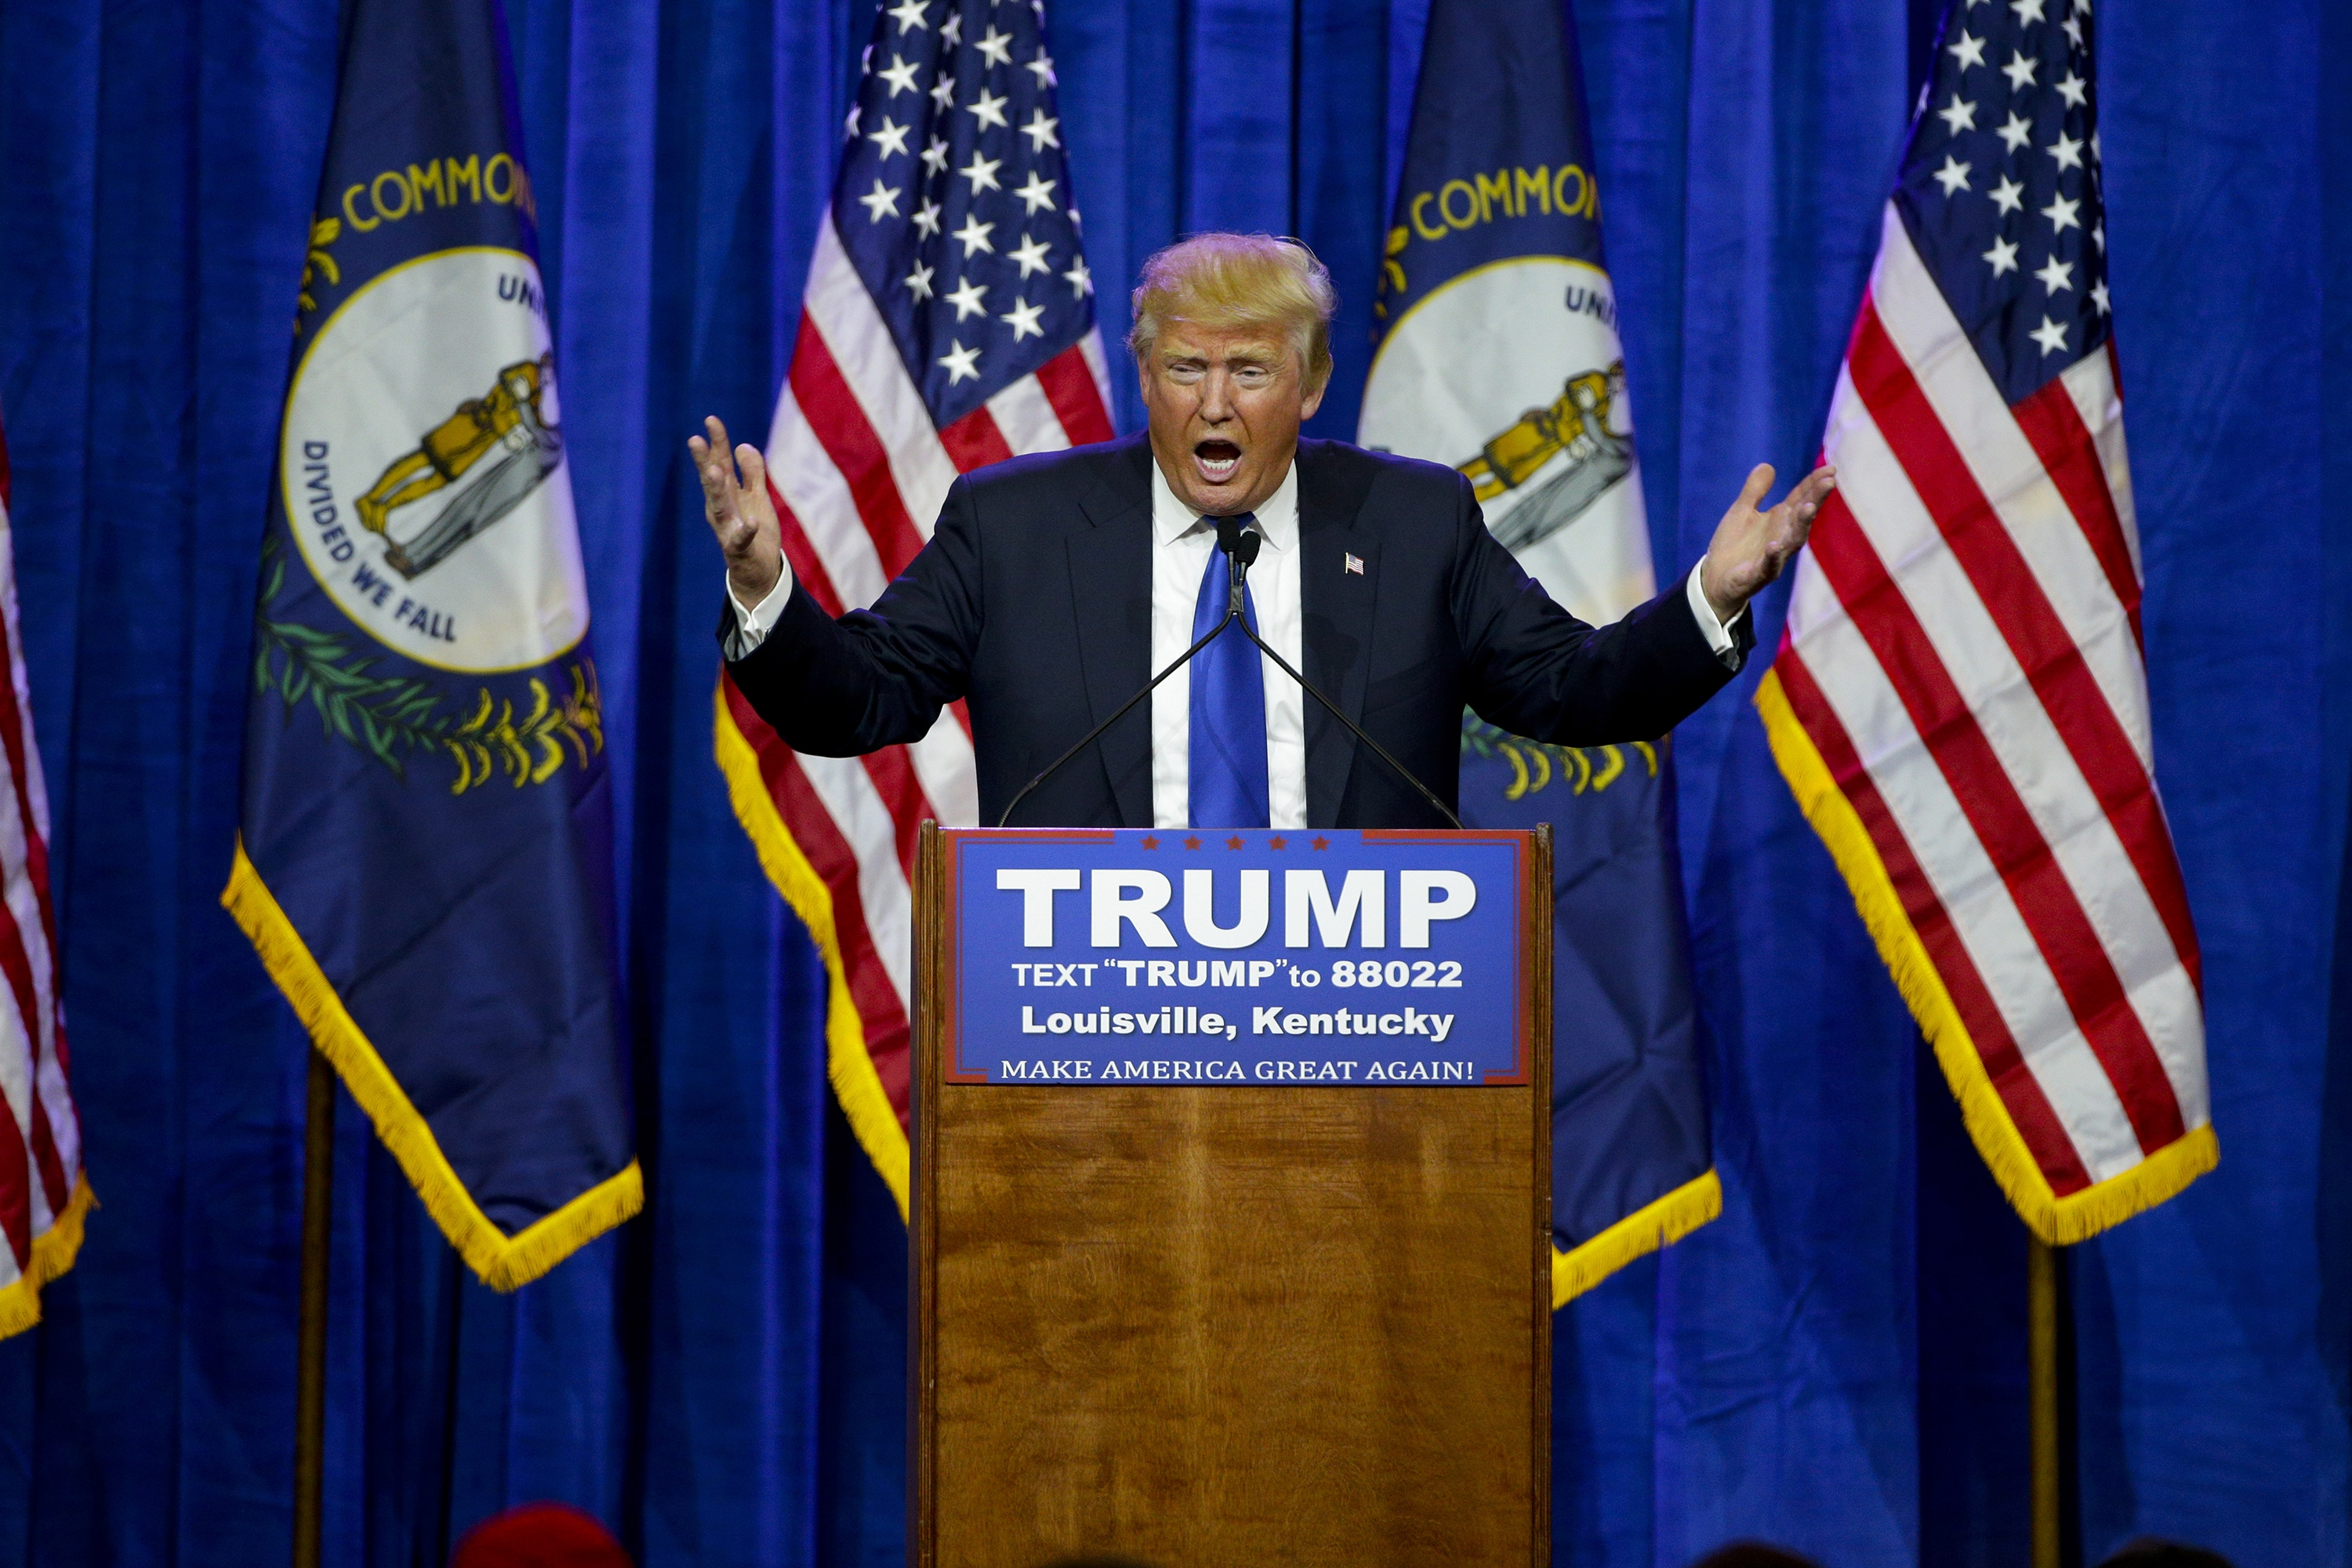 Donald Trump continued his run to the Republican presidential nomination by winning seven states on Super Tuesday. (Tribune New Service photo)